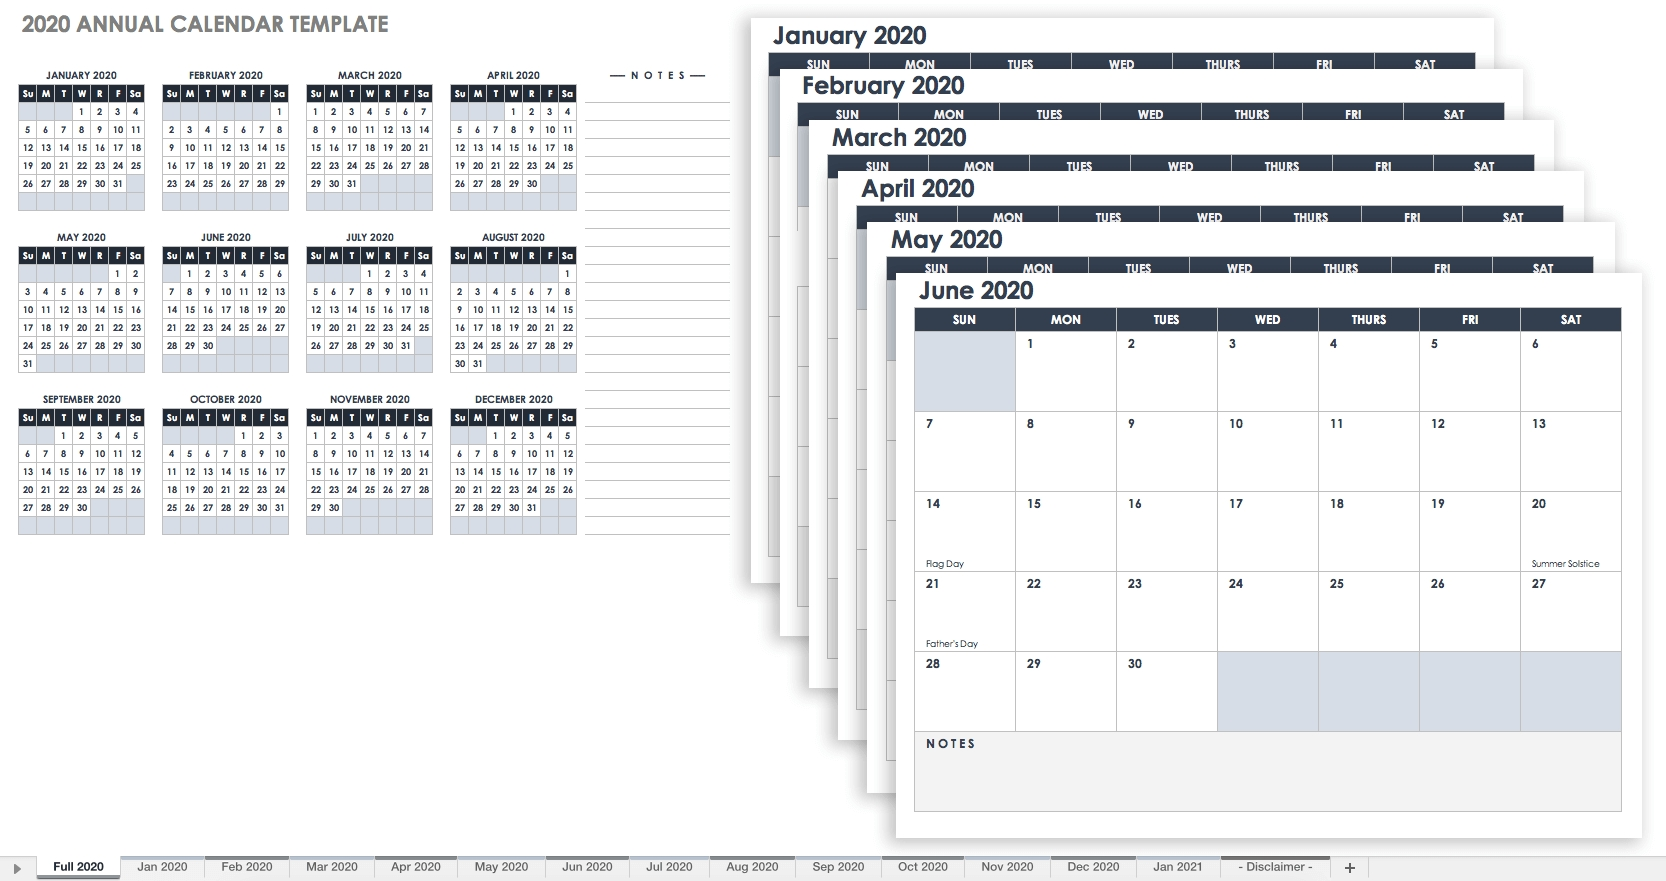 Free Blank Calendar Templates - Smartsheet-2 Page Monthly Planner 2020 Template